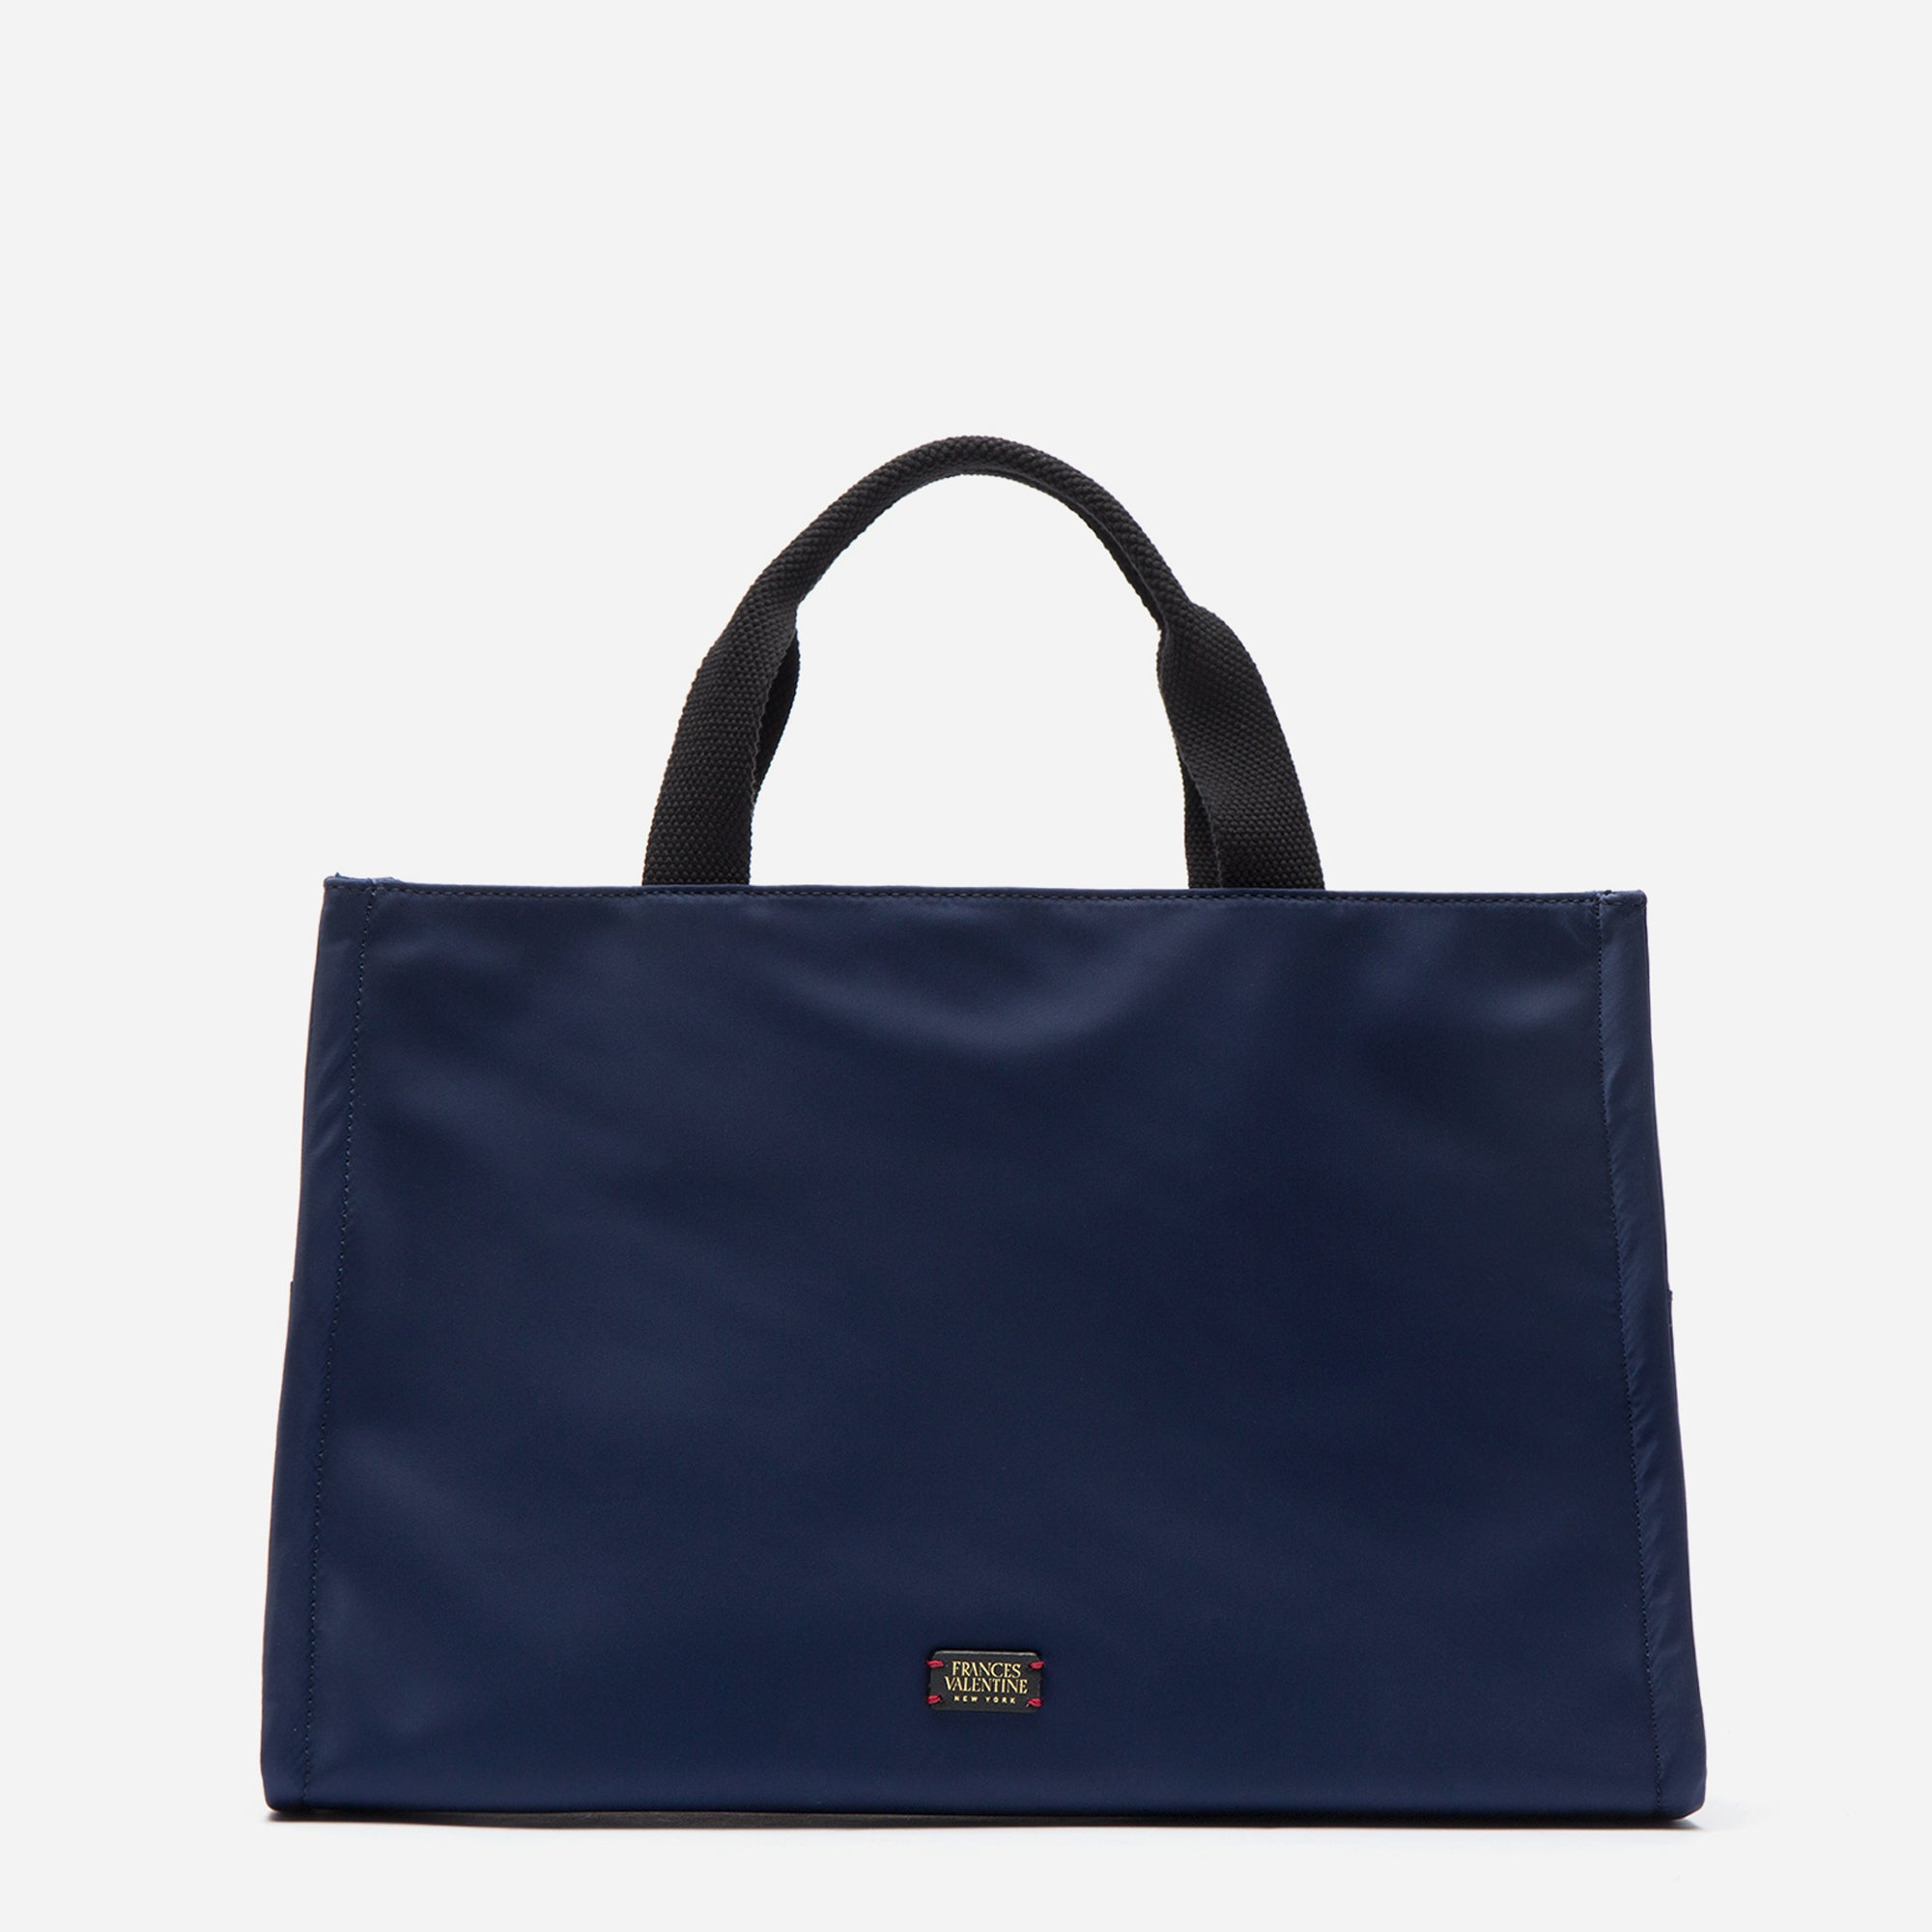 The Kate Top Handle Tote Navy